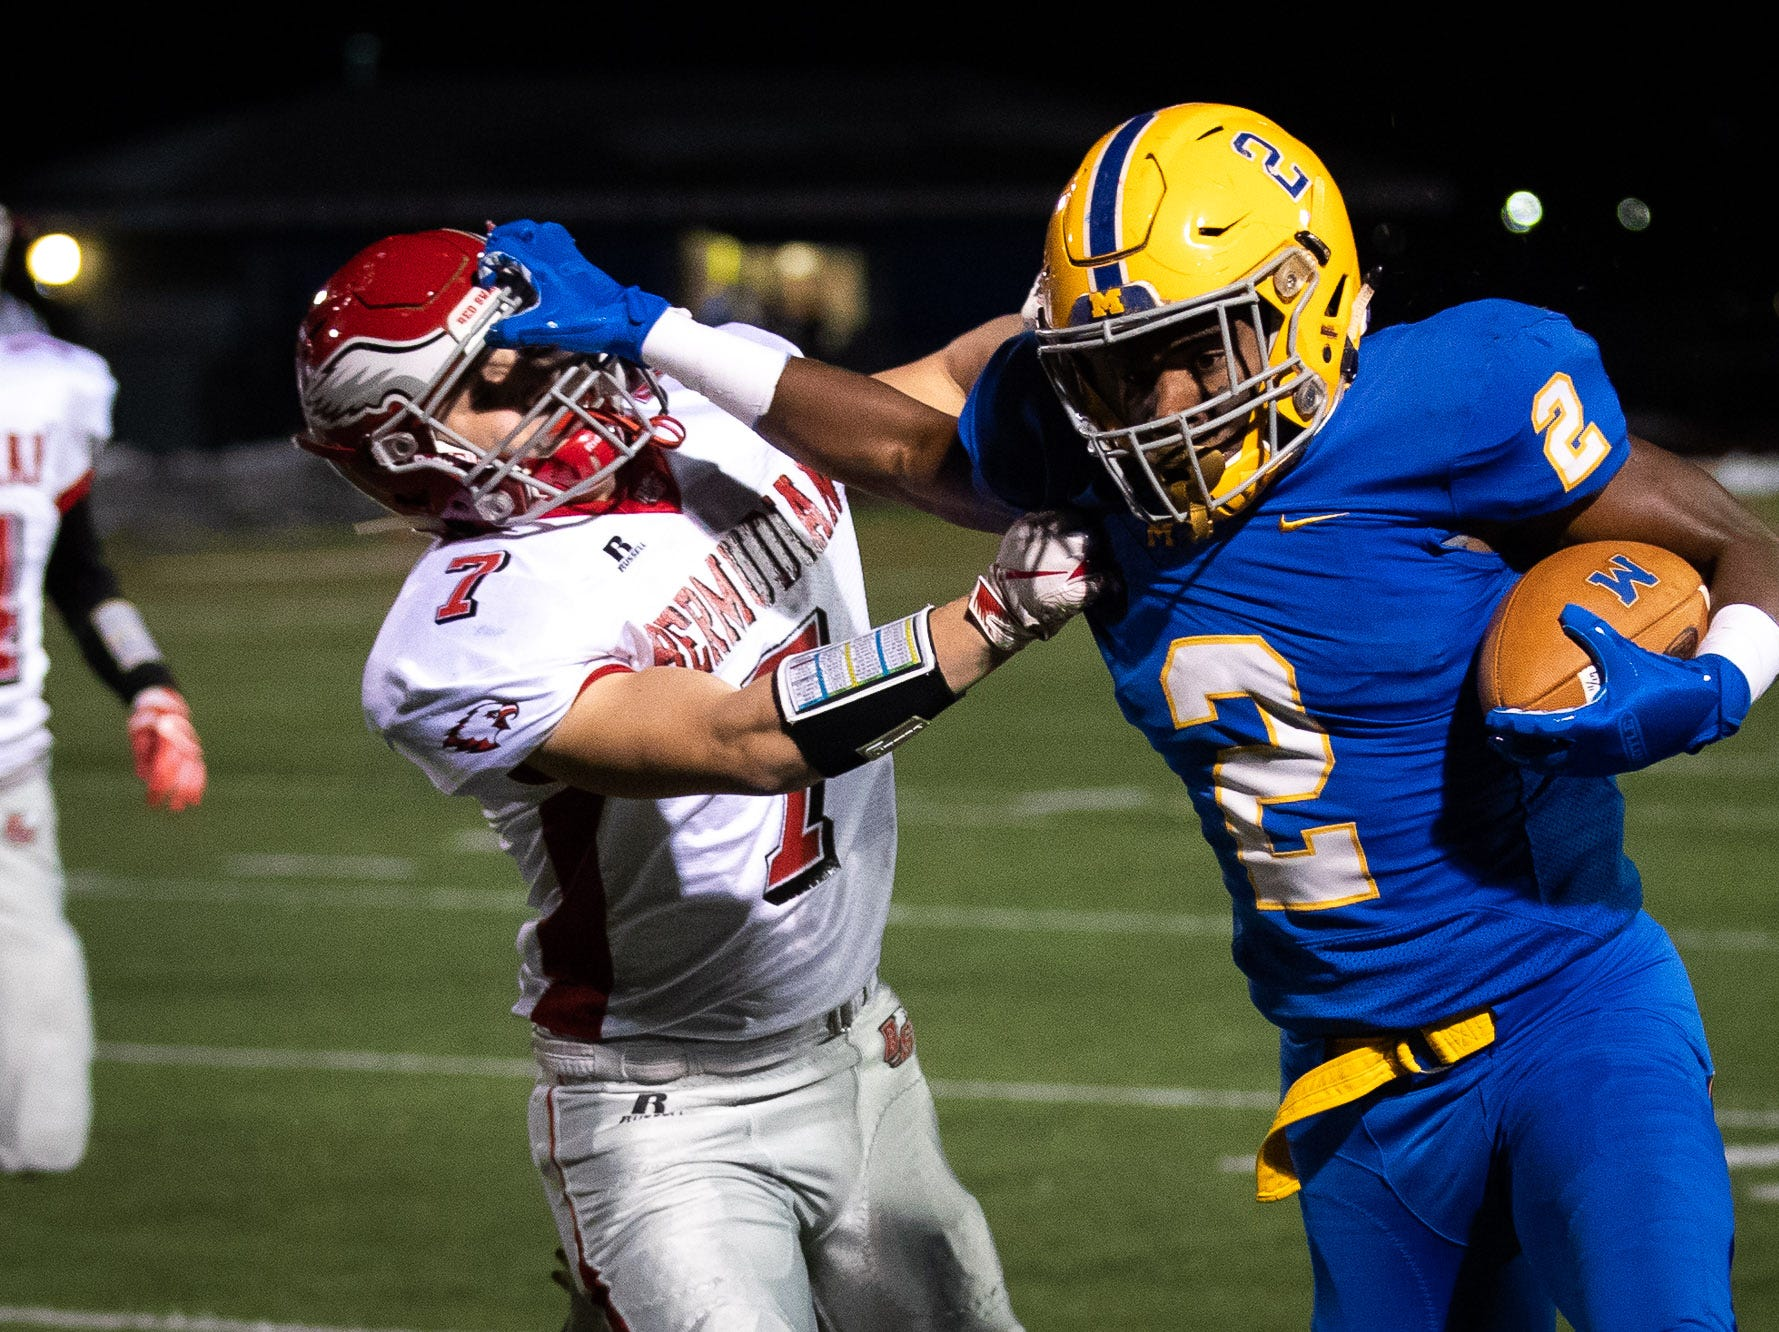 Middletown's Richie Sykes (2) stiff-arms Bermudian Springs' Matt Zelenski (7) during the first half of the District 3 Class 3A championship game between Bermudian Springs and Middletown, Saturday, Nov. 17, 2018, at Cedar Crest High School. Middletown leads Bermudian Springs 28-6 at the half.